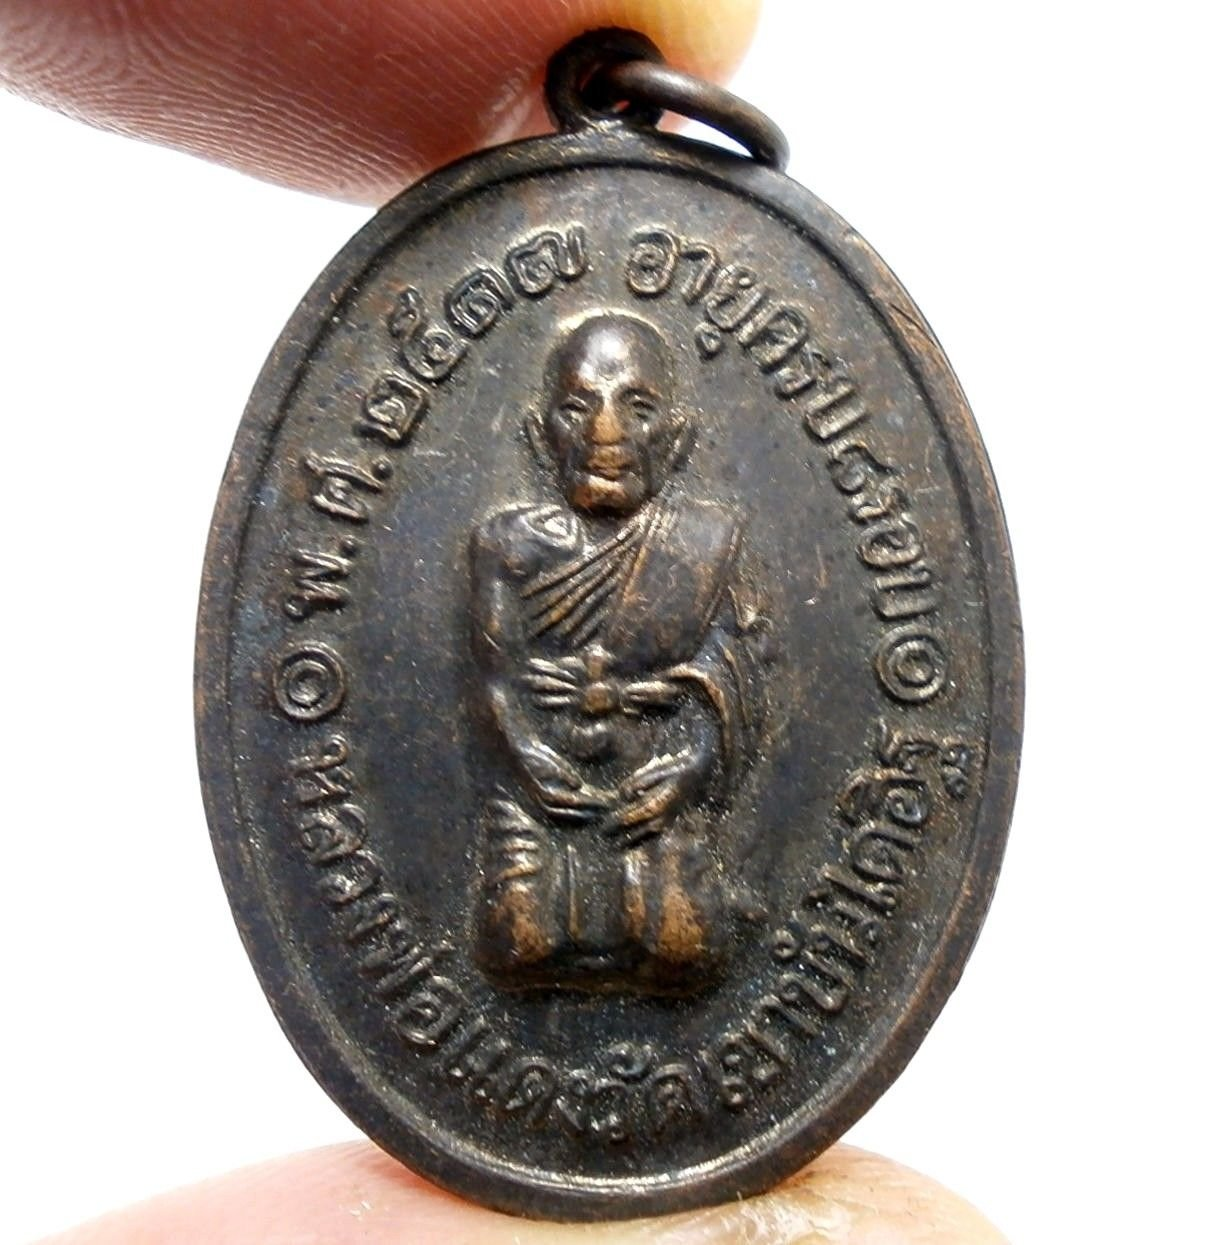 LP DANG COIN 96 YEAR OLD BATCH THAI BUDDHA AMULET LUCKY SUCCESS PENDANT NECKLACE